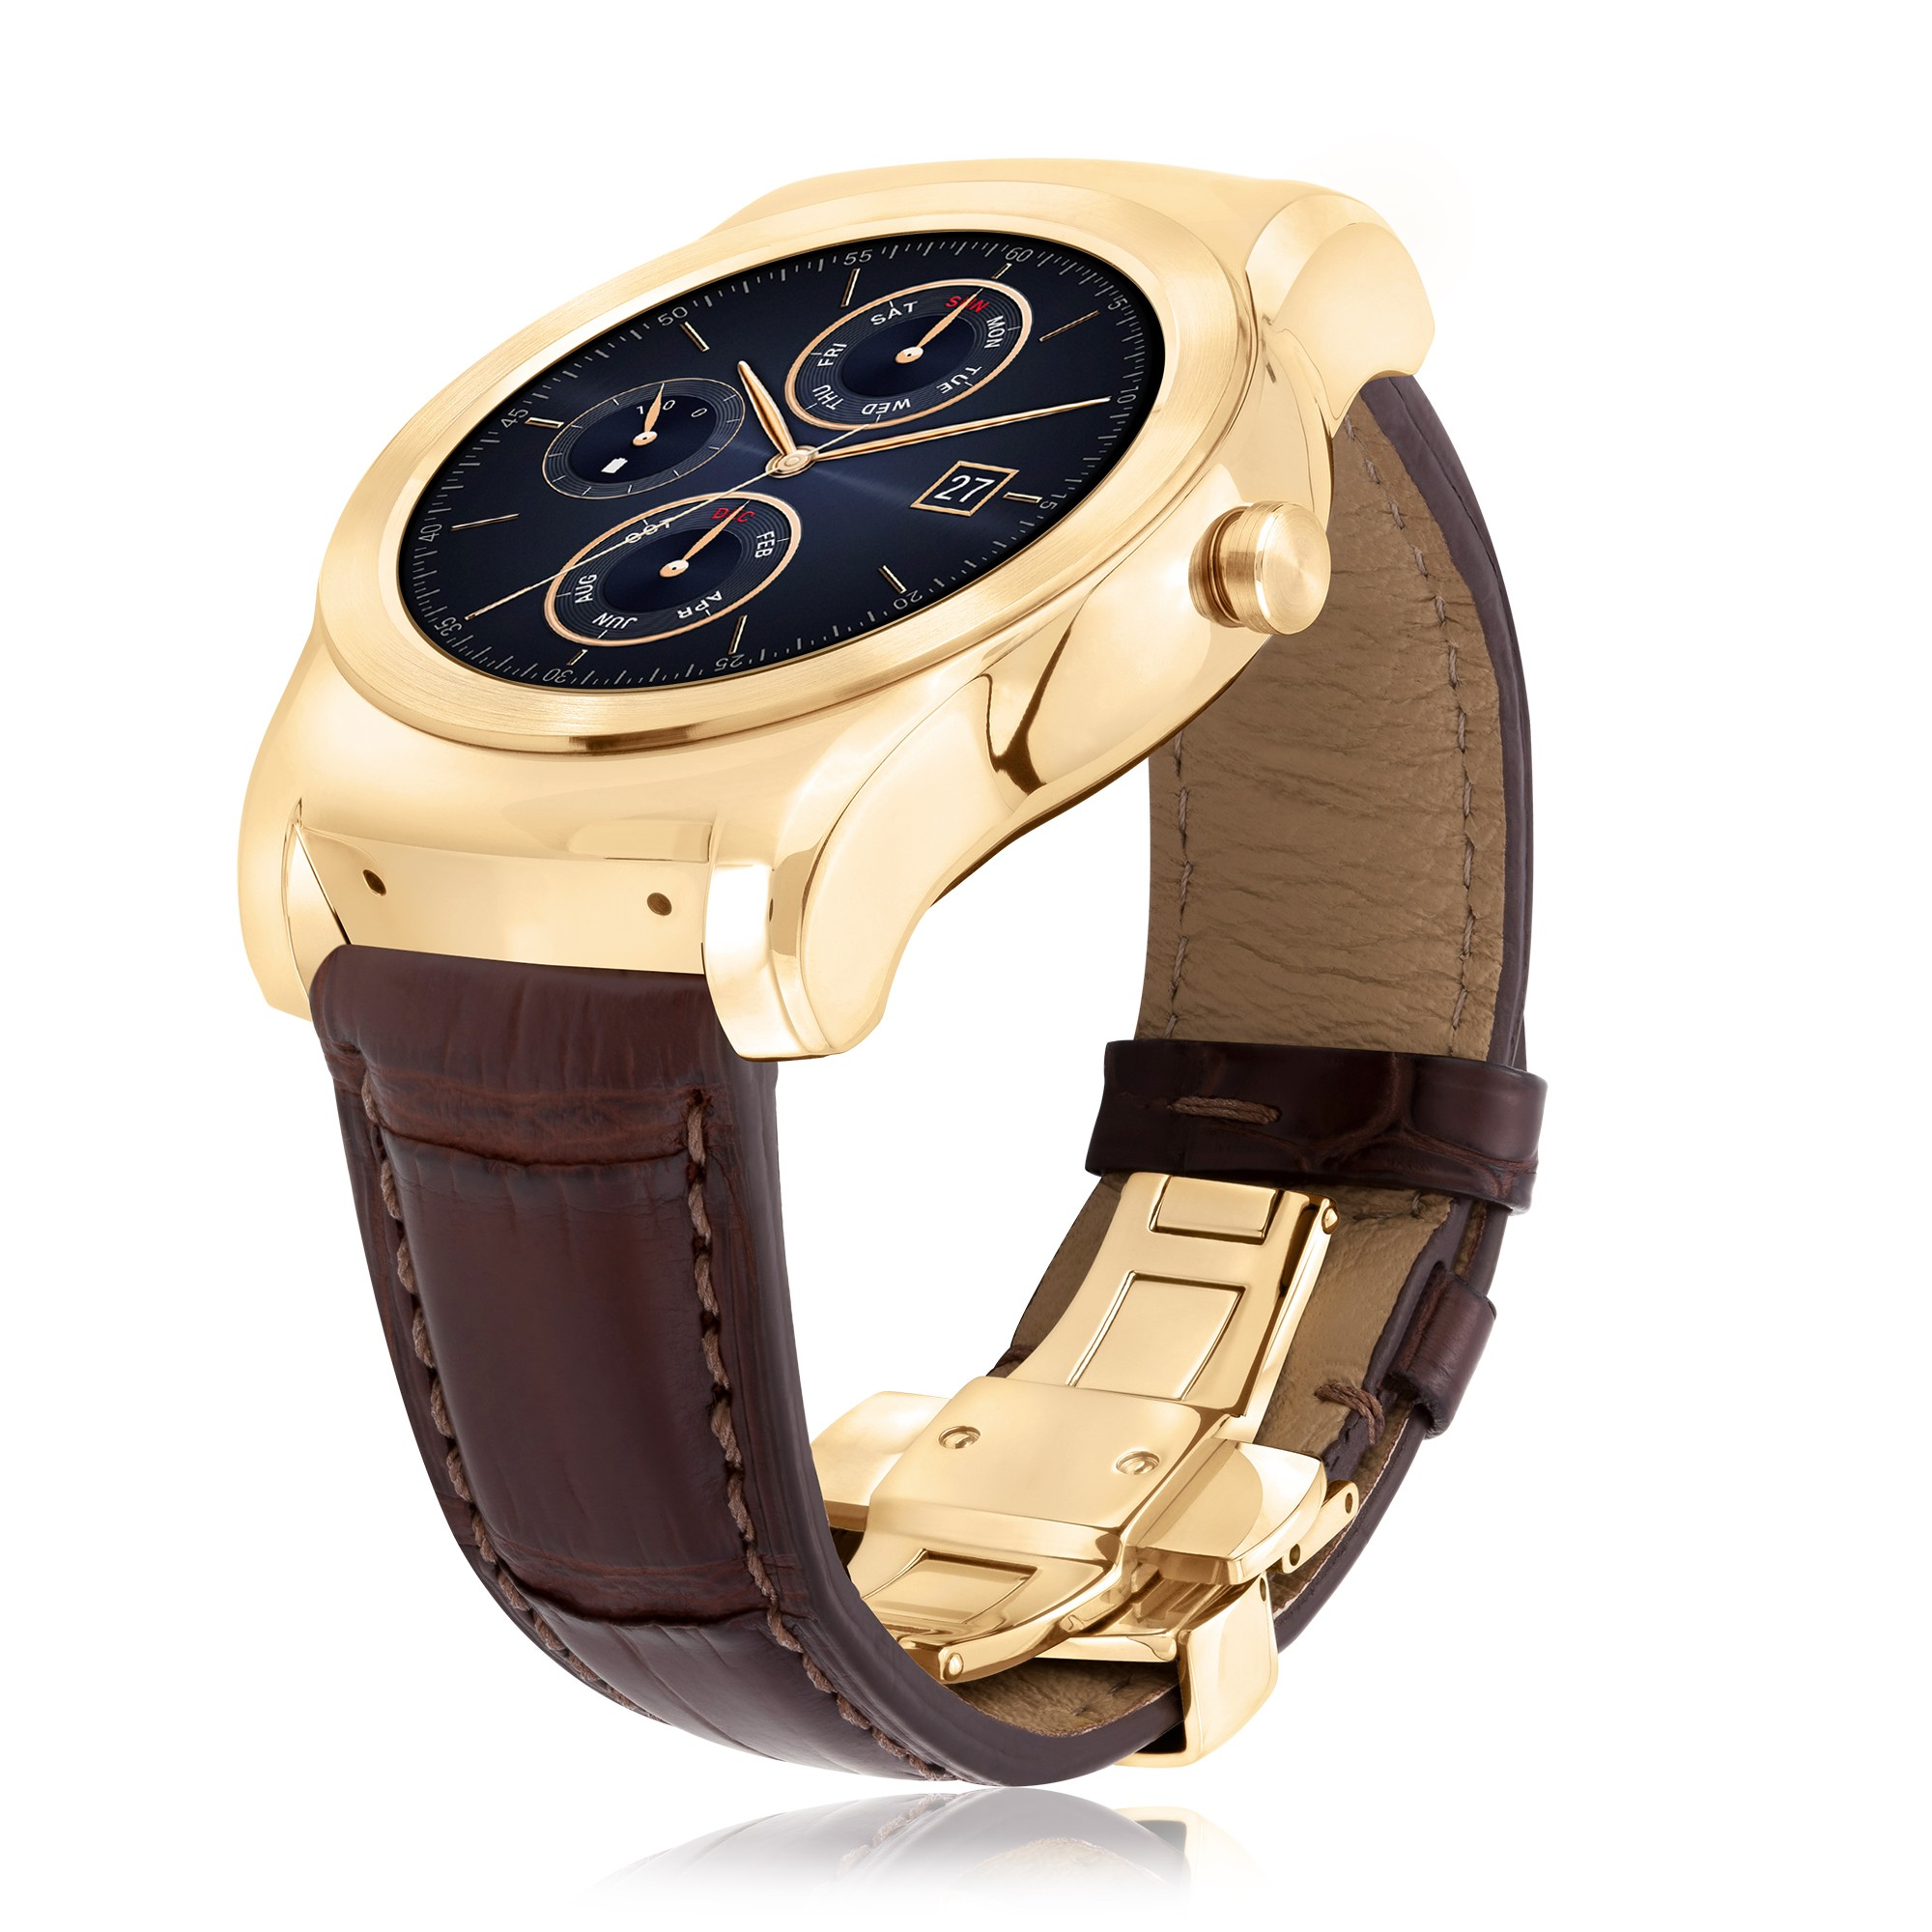 LG promotes new Watch Urbane Luxe